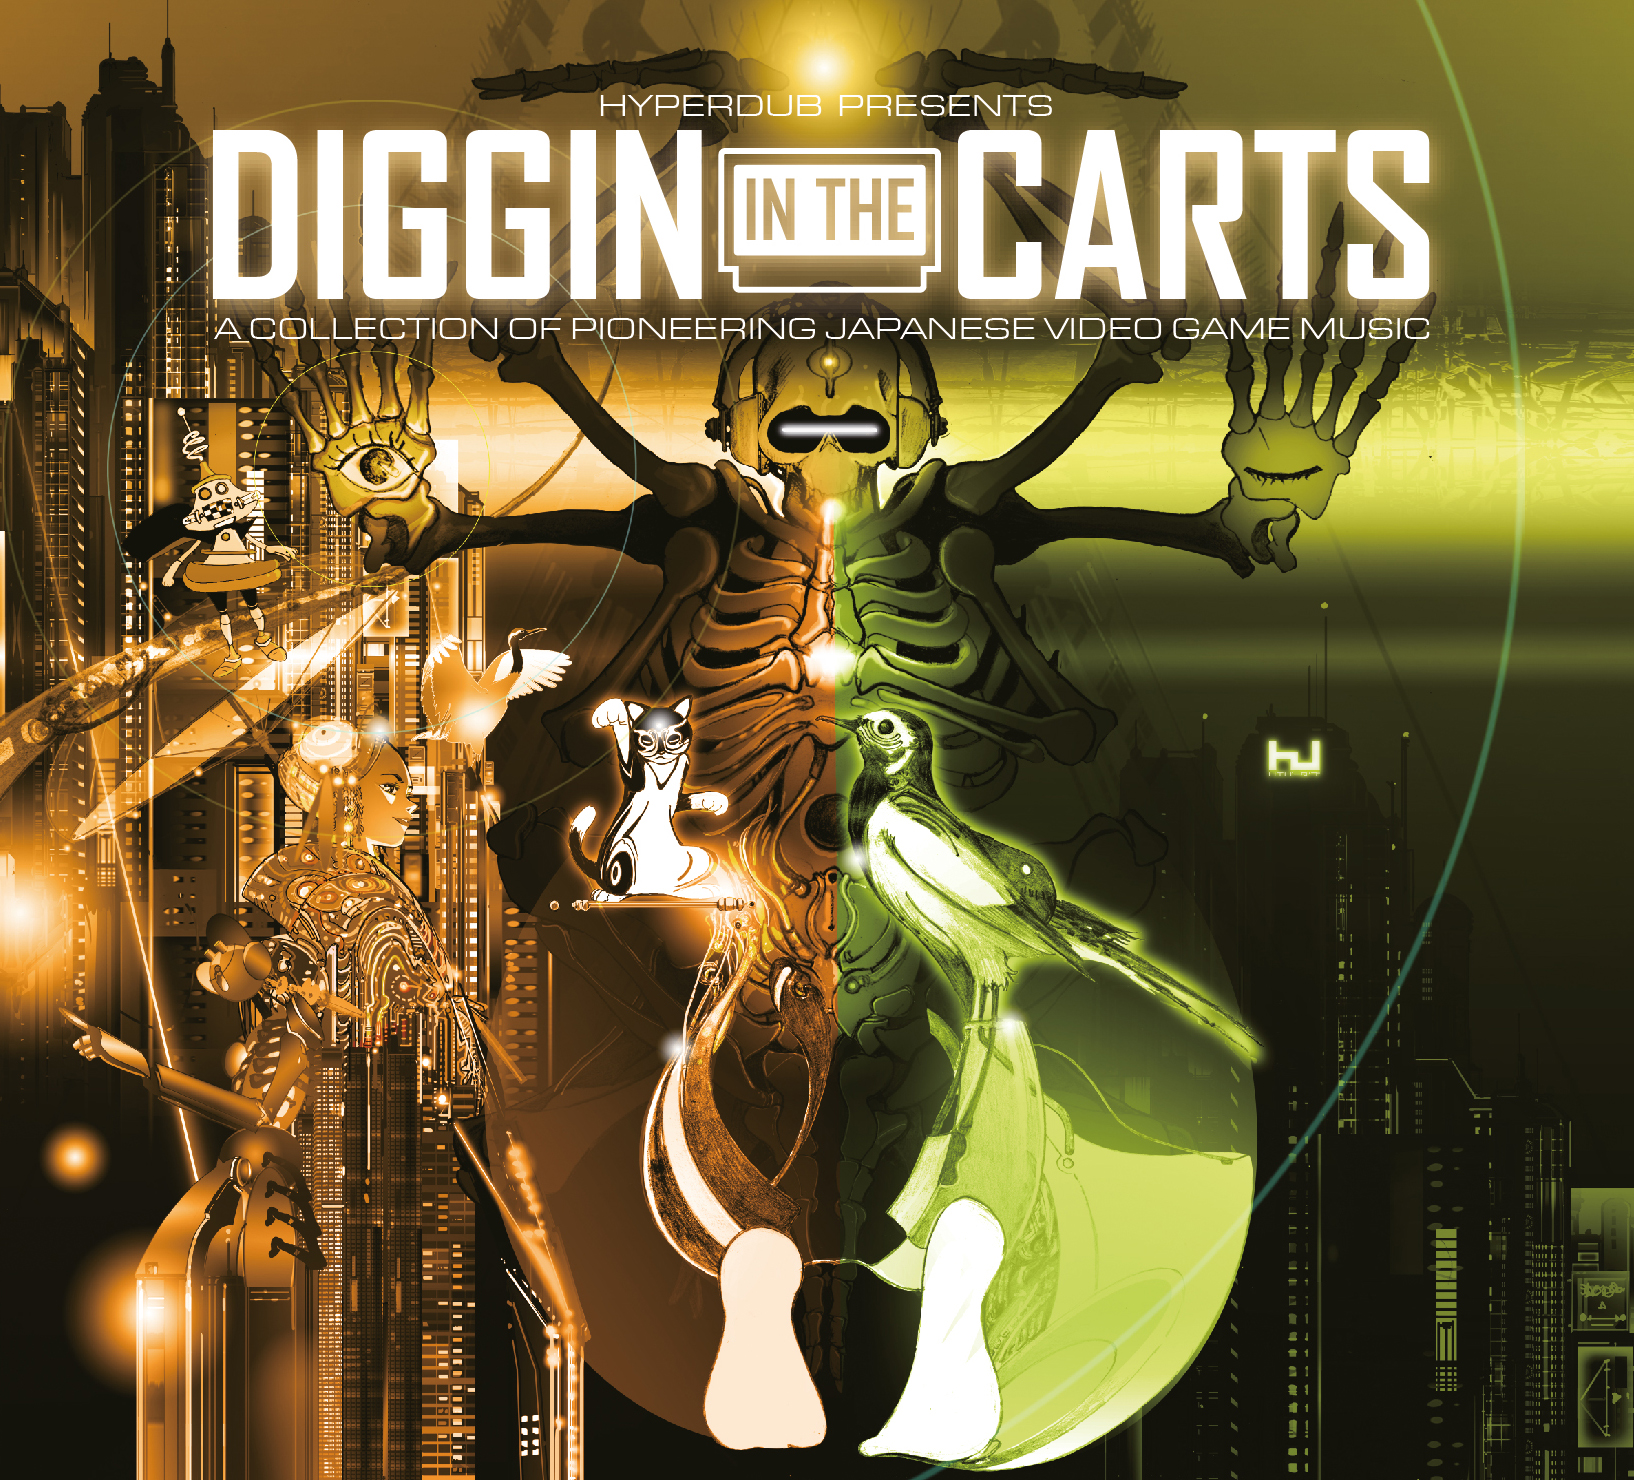 Hyperdub collect rare, pioneering video game music on Diggin' In The